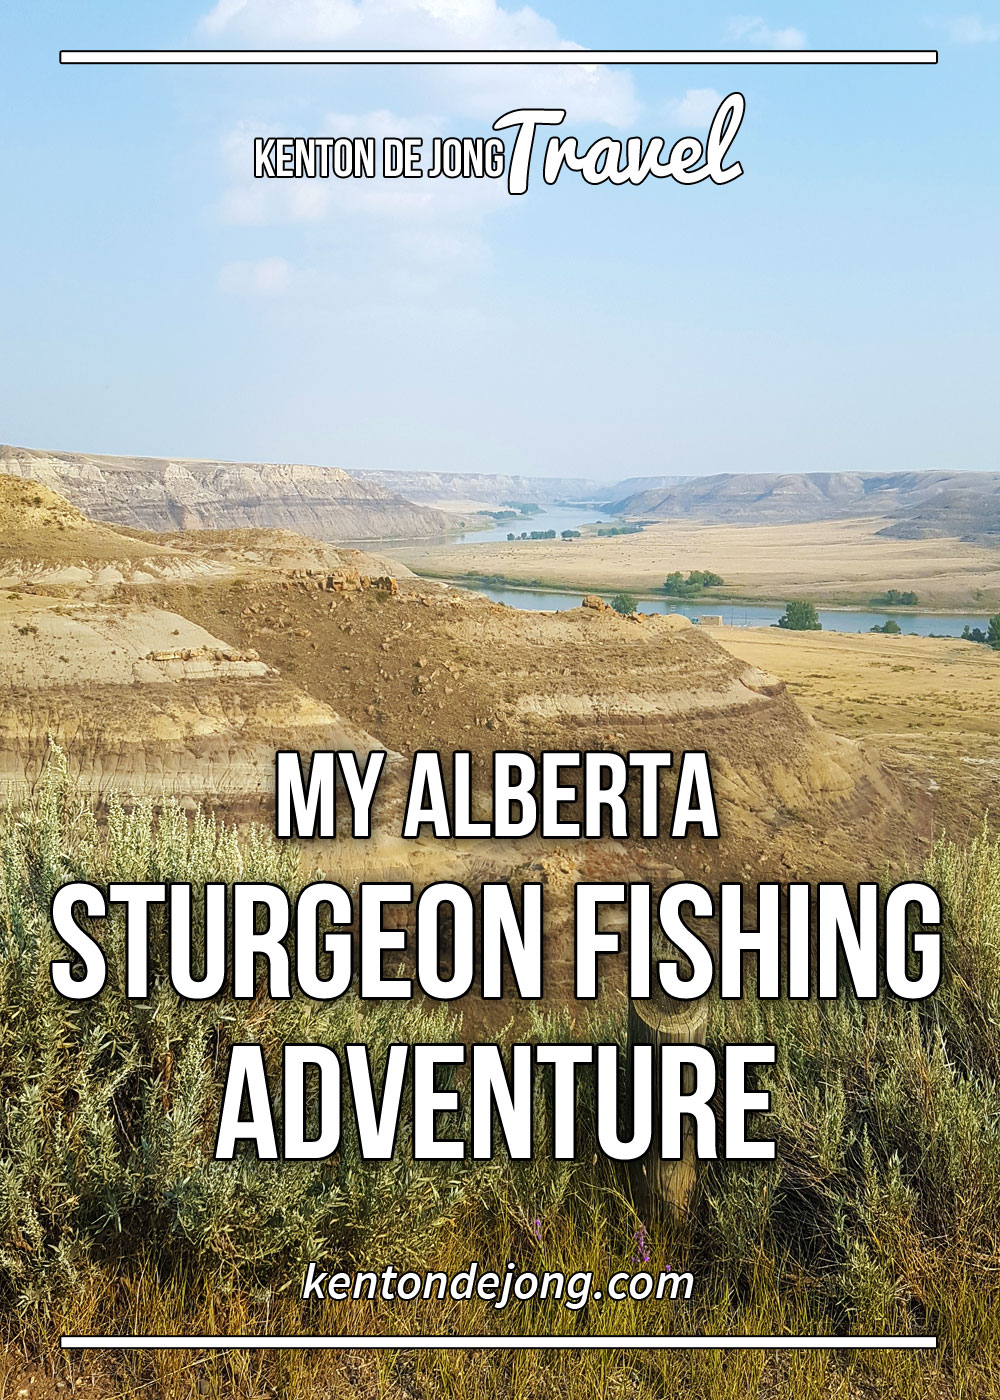 My Alberta Sturgeon Fishing Adventure